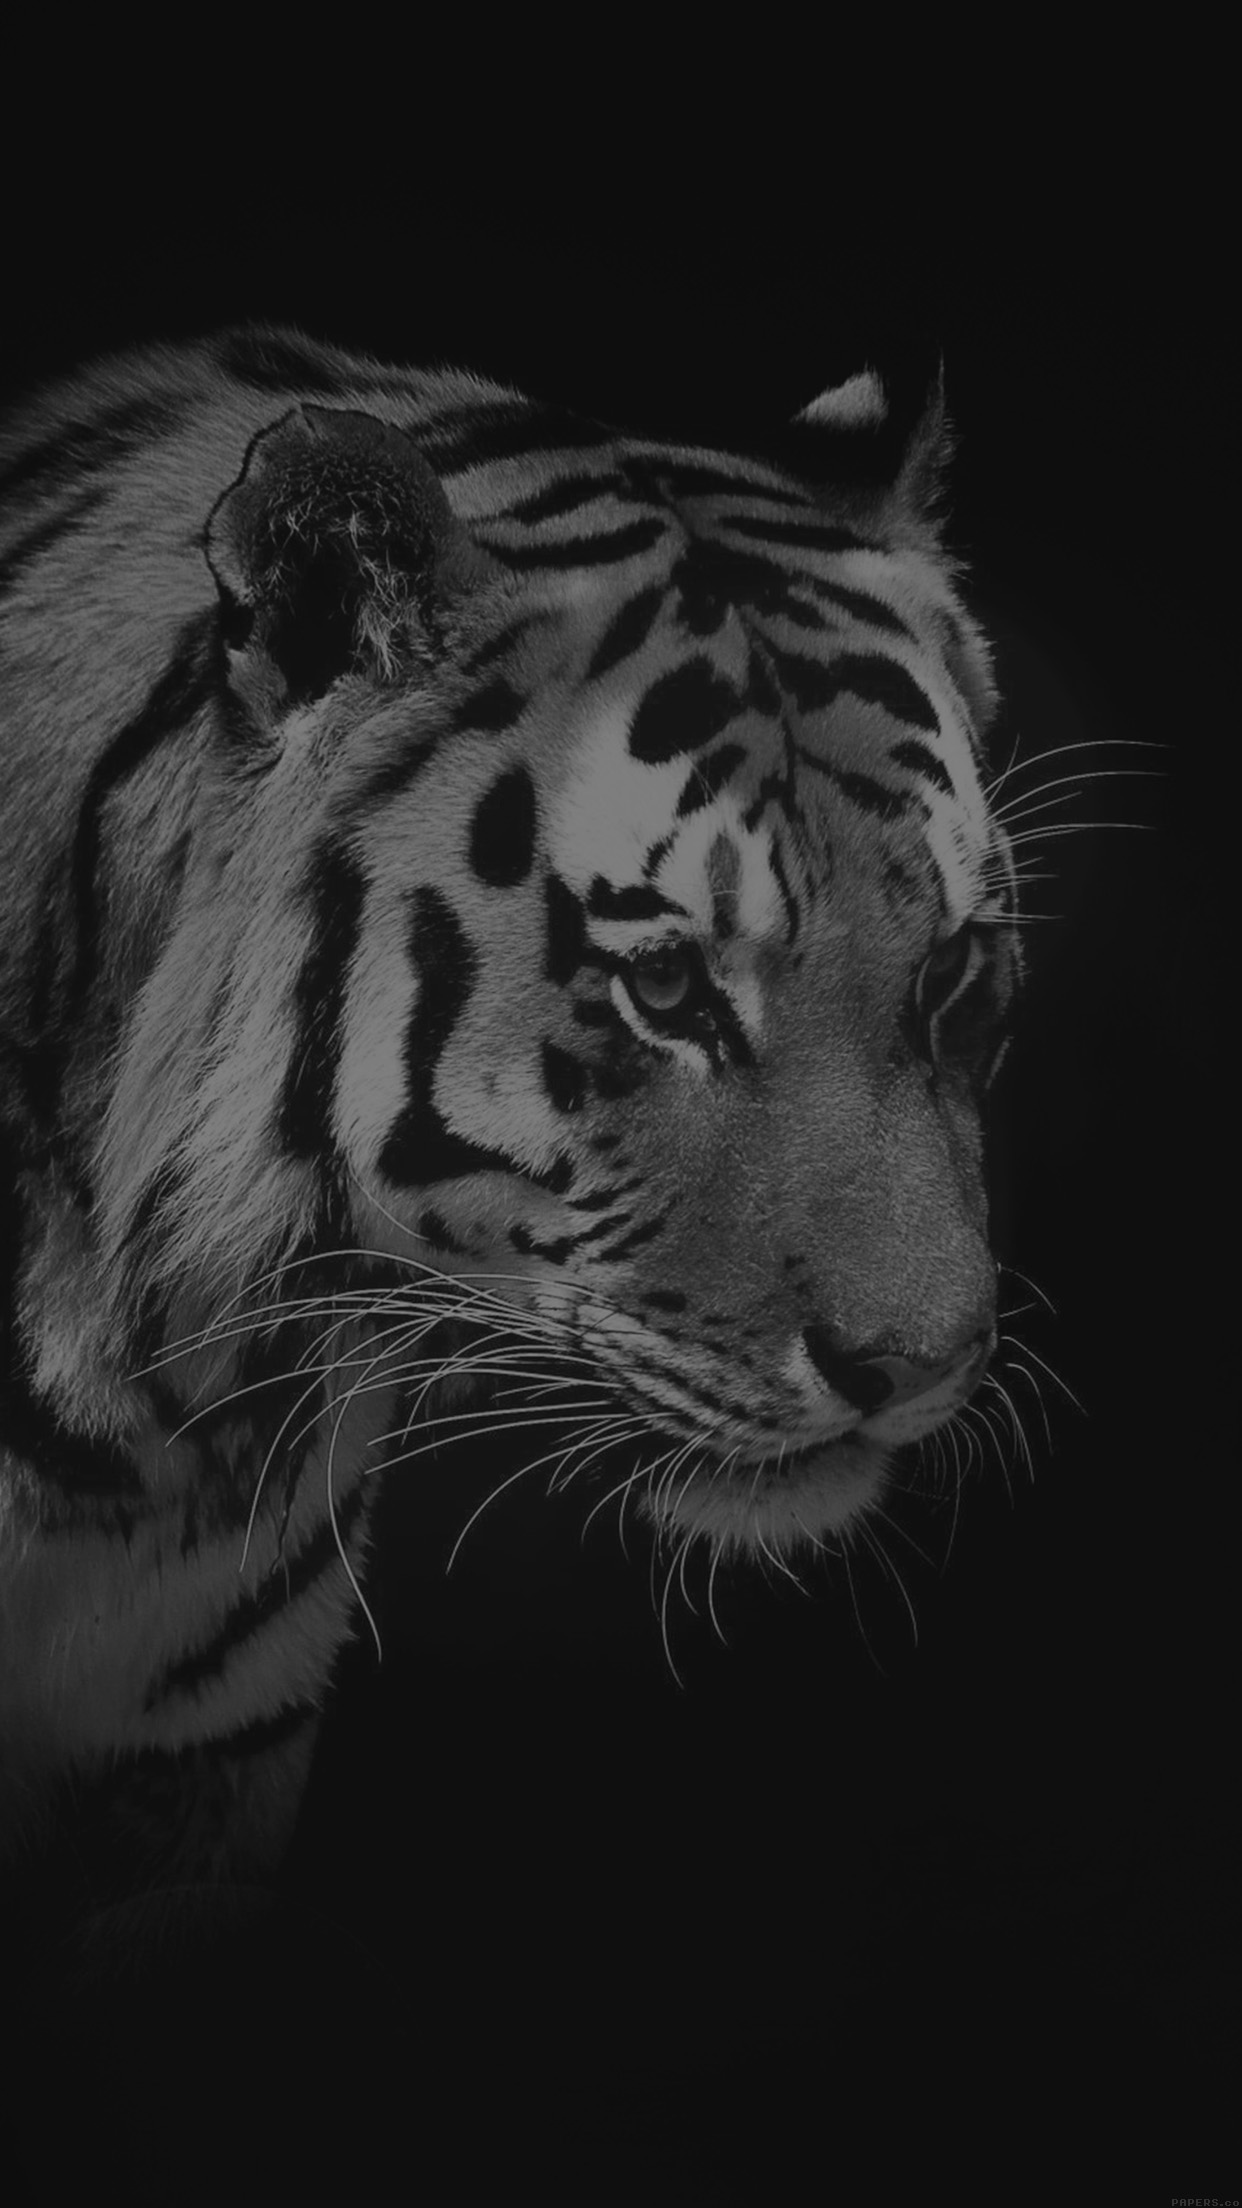 Iphone7papers Mm83 Tiger Dark Bw Animal Love Nature